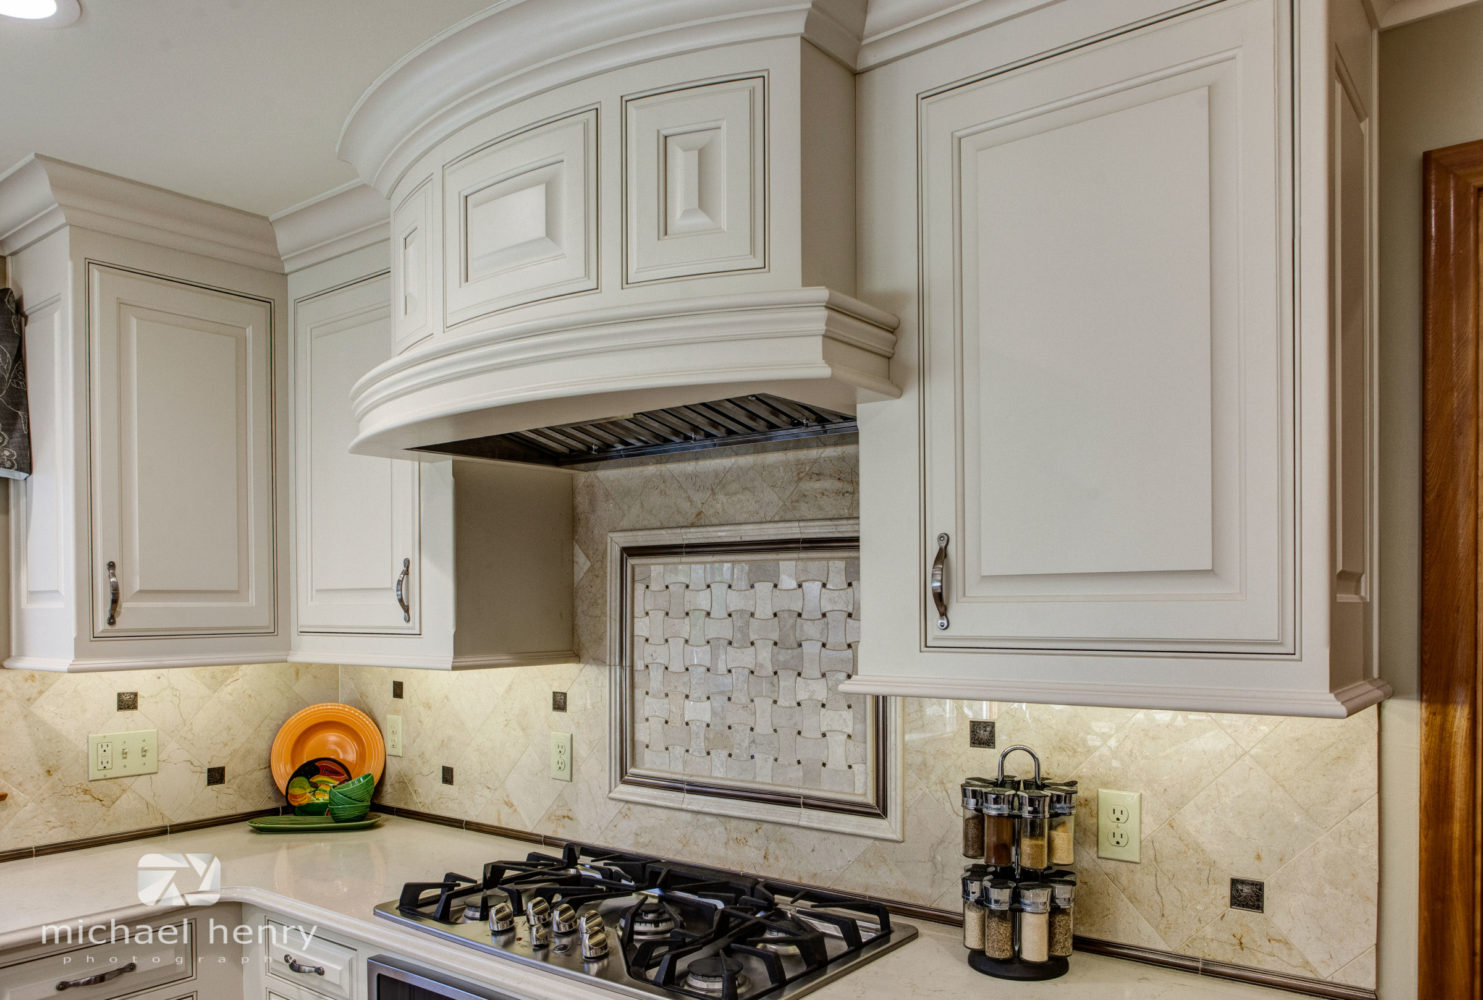 Stove Hood integrates nicely with Kitchen.